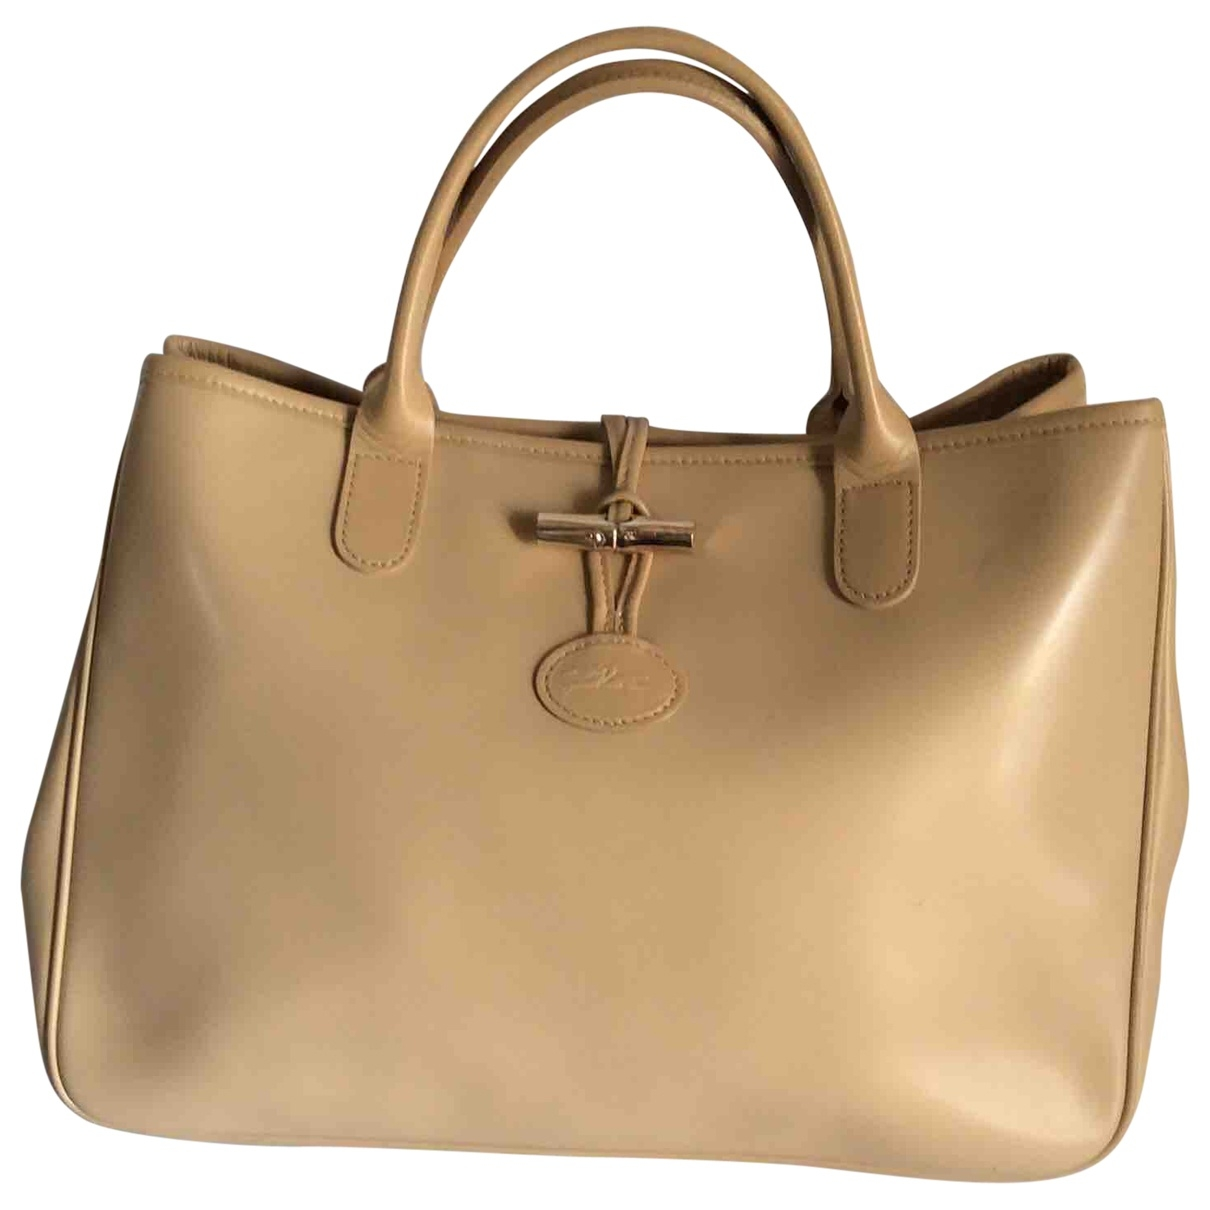 Longchamp \N Beige Leather handbag for Women \N